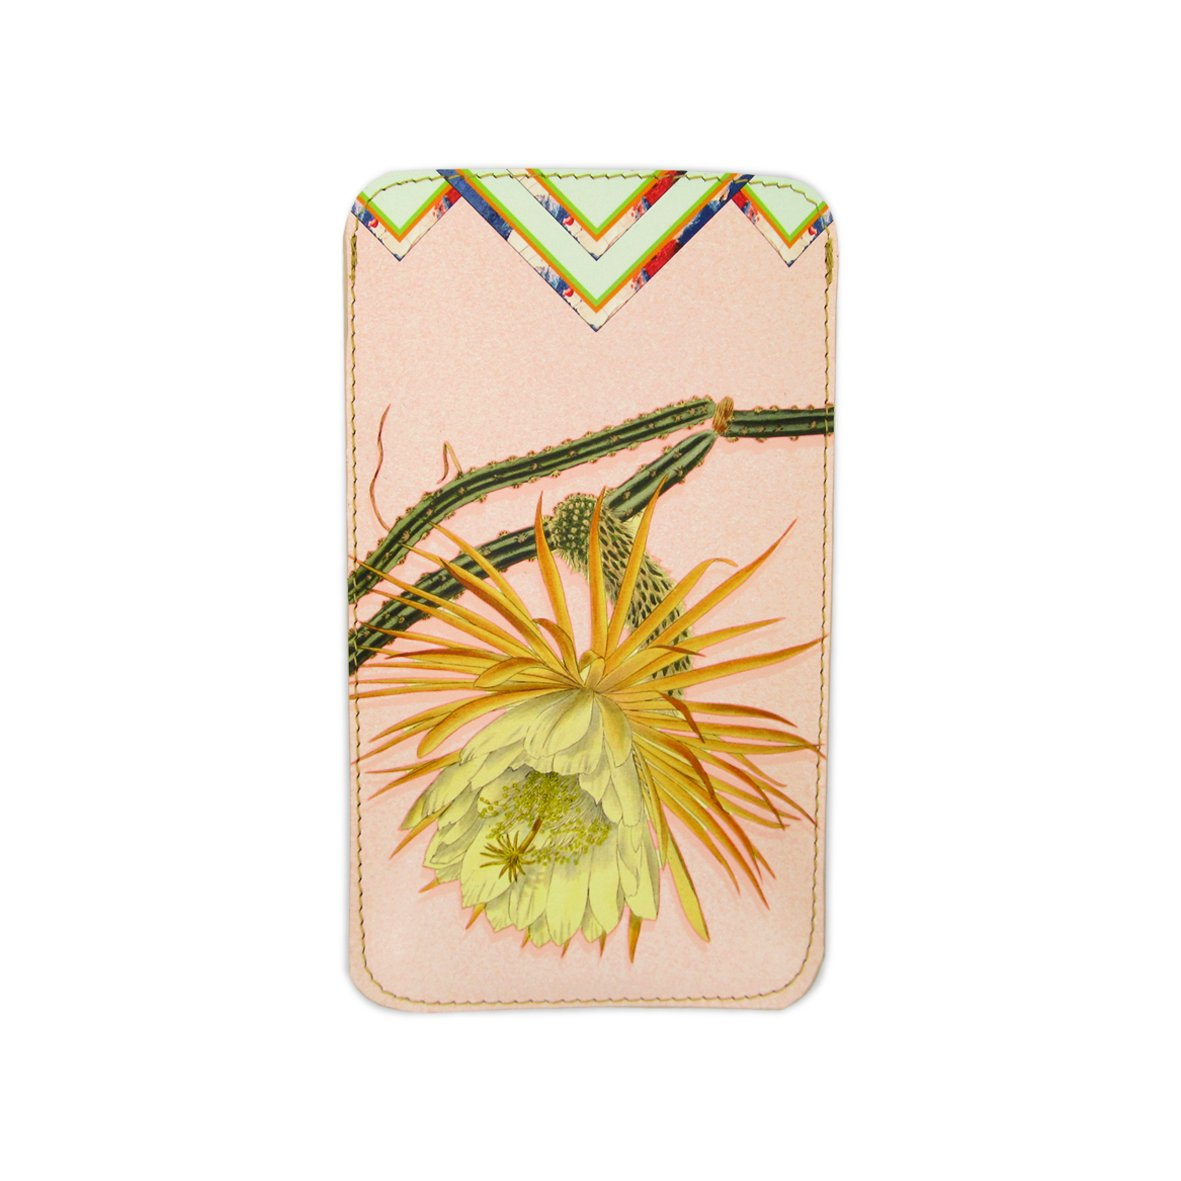 Leather Phone Case Sleeve - Cactus Flower Phone case Tovi Sorga iPhone XR No personalisation Pink